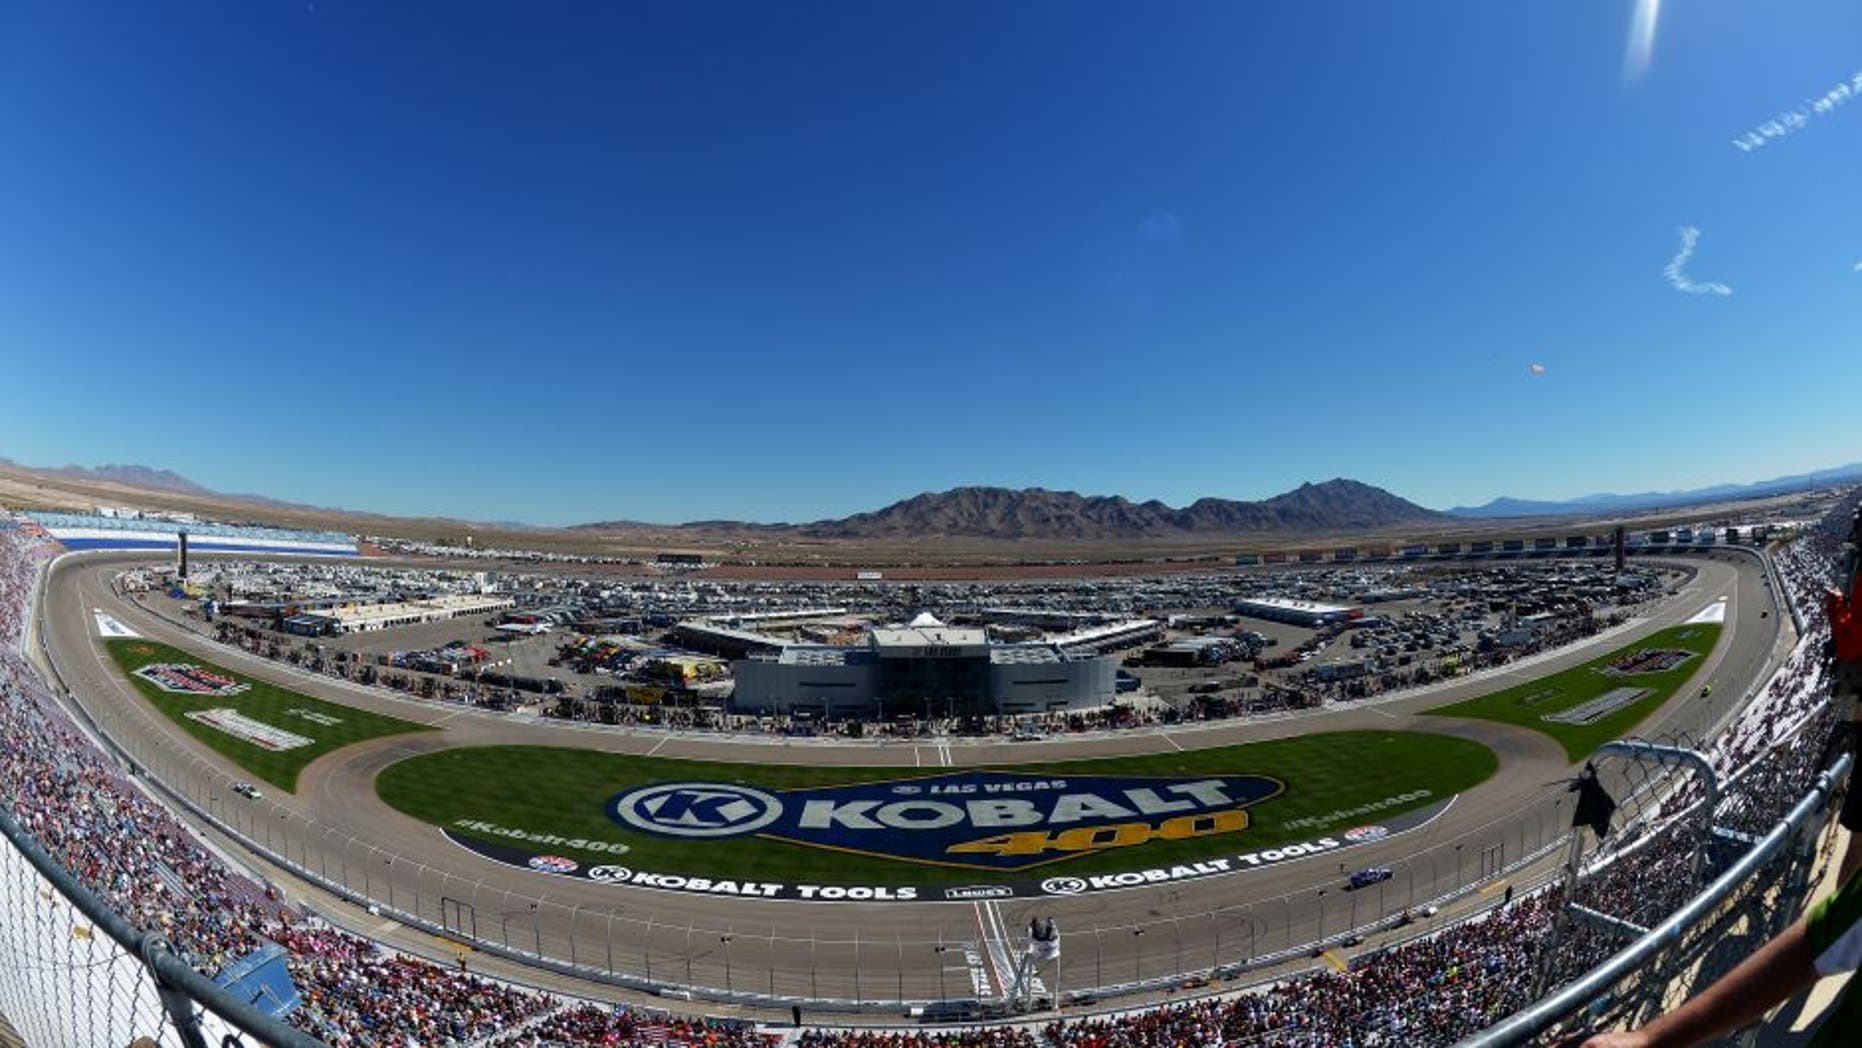 LAS VEGAS, NV - MARCH 08: A general view of cars racing during the NASCAR Nationwide Series Boyd Gaming 300 at Las Vegas Motor Speedway on March 8, 2014 in Las Vegas, Nevada. (Photo by Drew Hallowell/NASCAR via Getty Images)